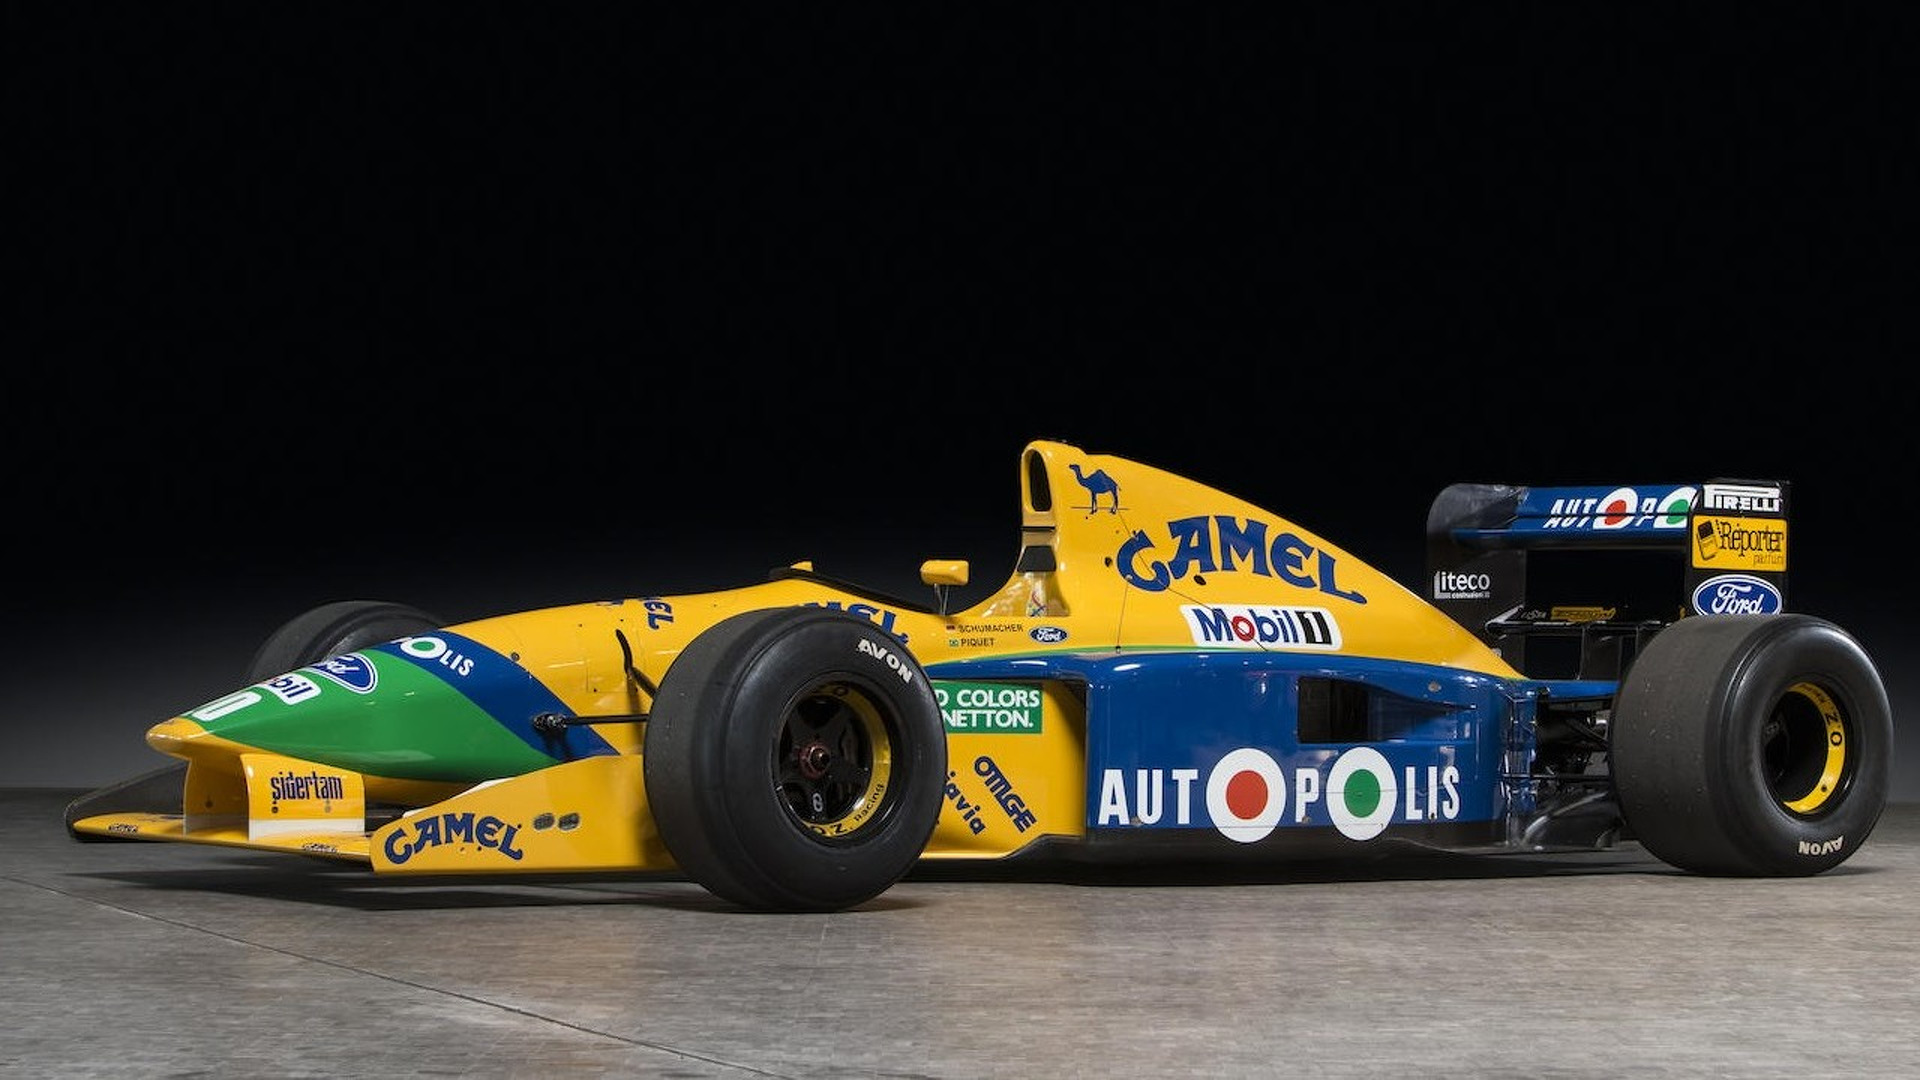 Image result for benetton F1